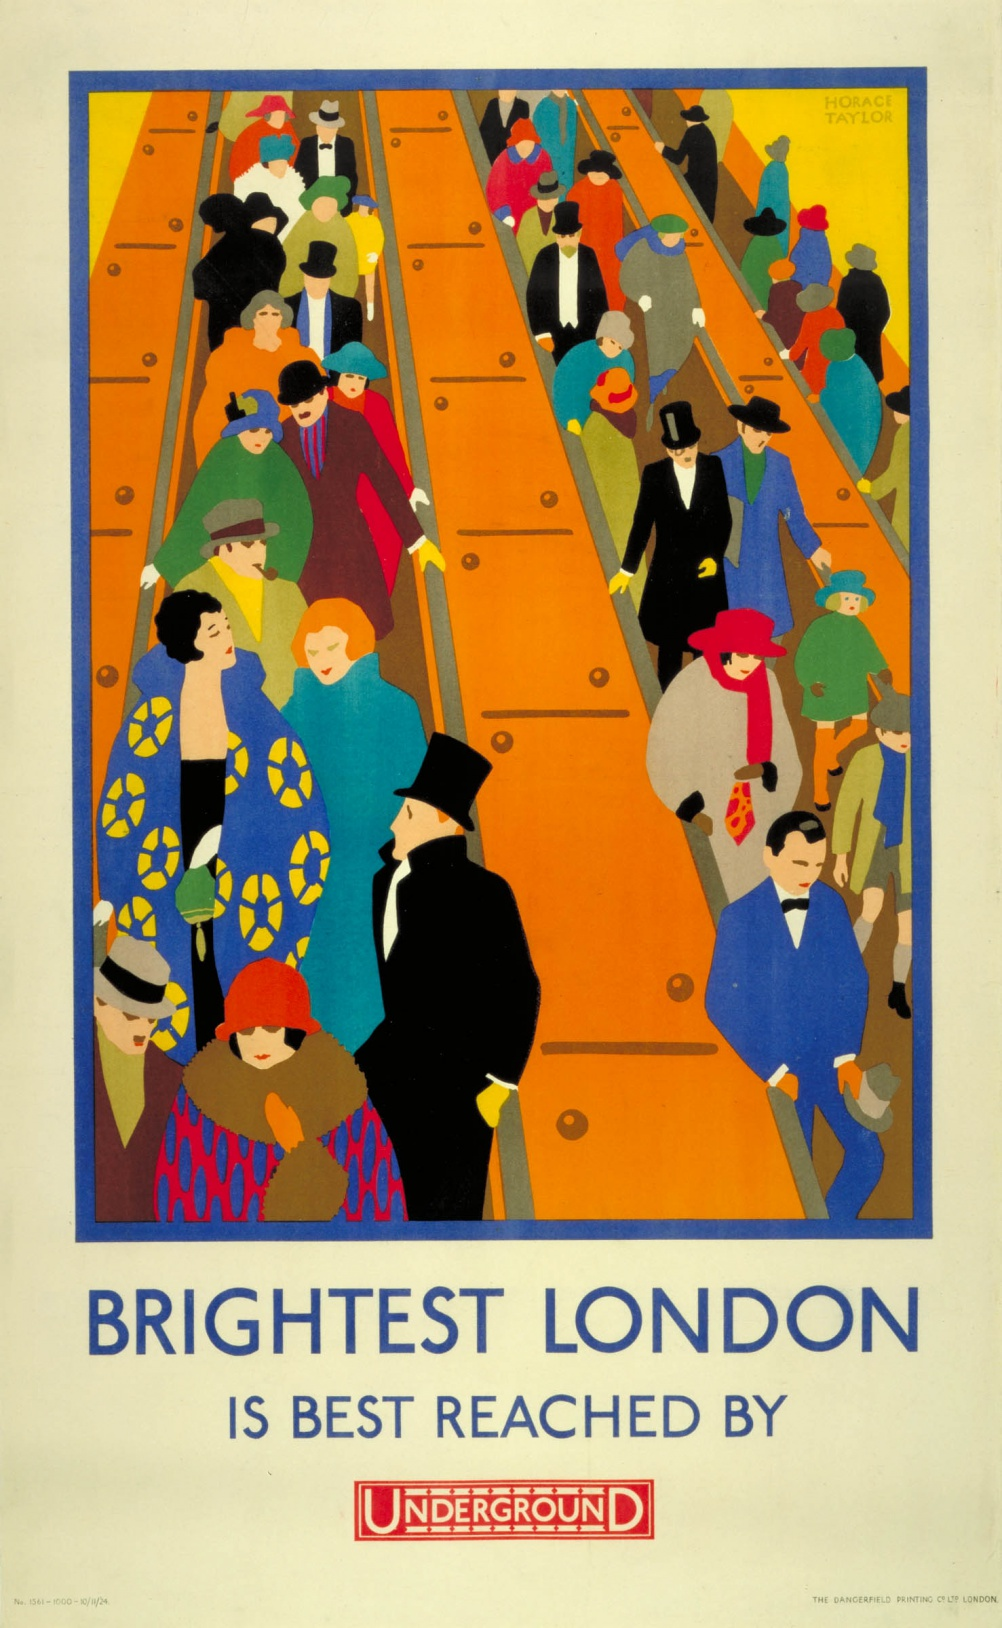 Brightest London, by Horace Taylor